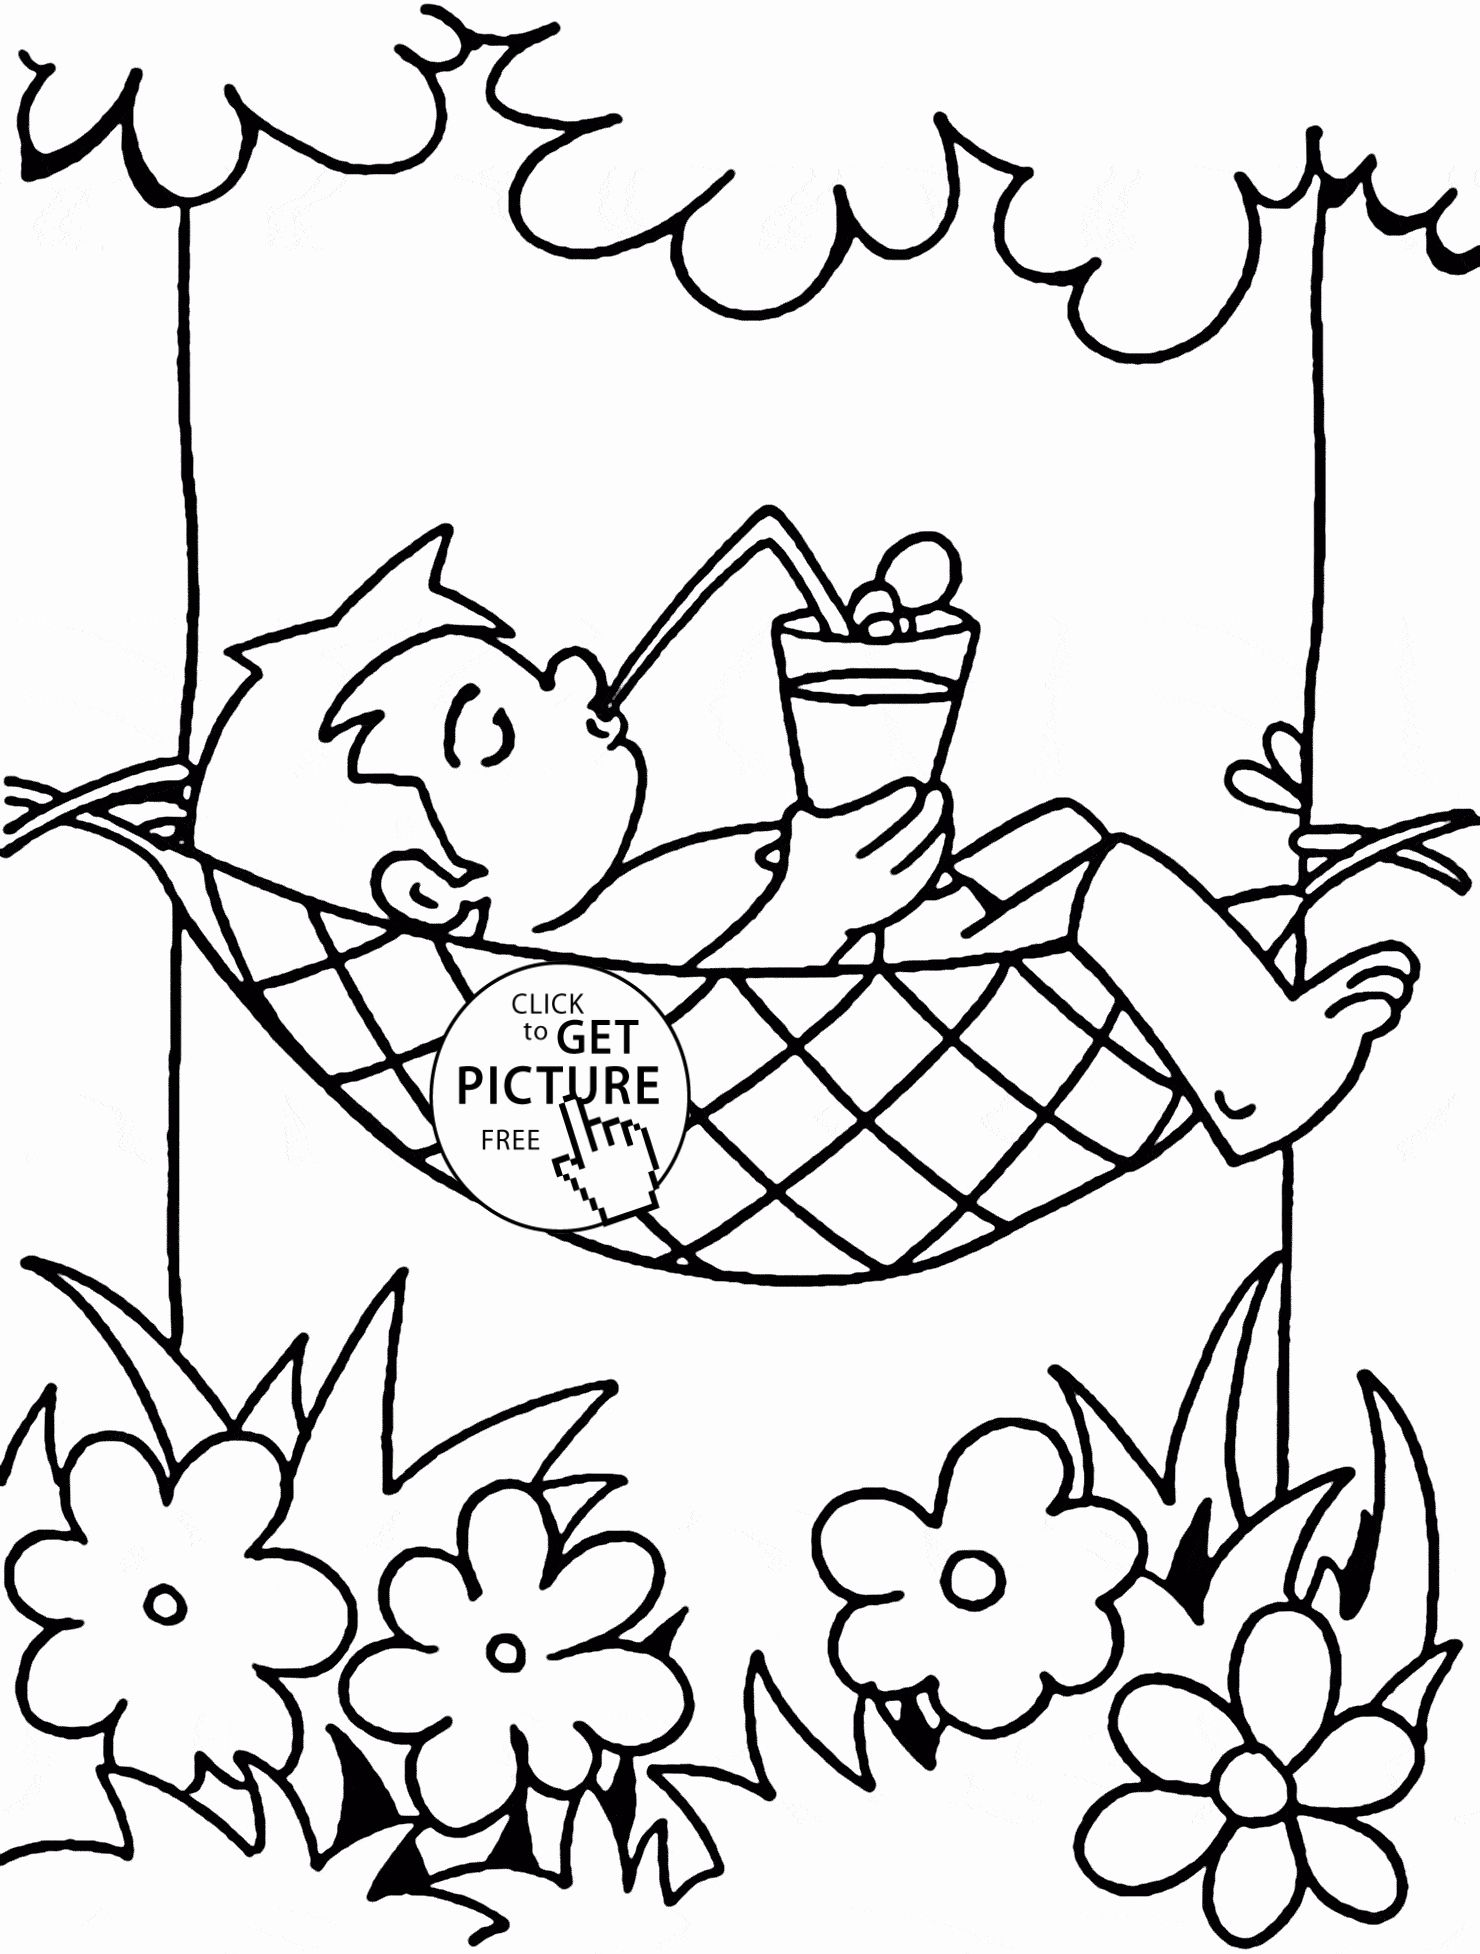 Kids Summer Coloring Pages In 2020 Summer Coloring Pages Christmas Coloring Sheets Christmas Coloring Pages